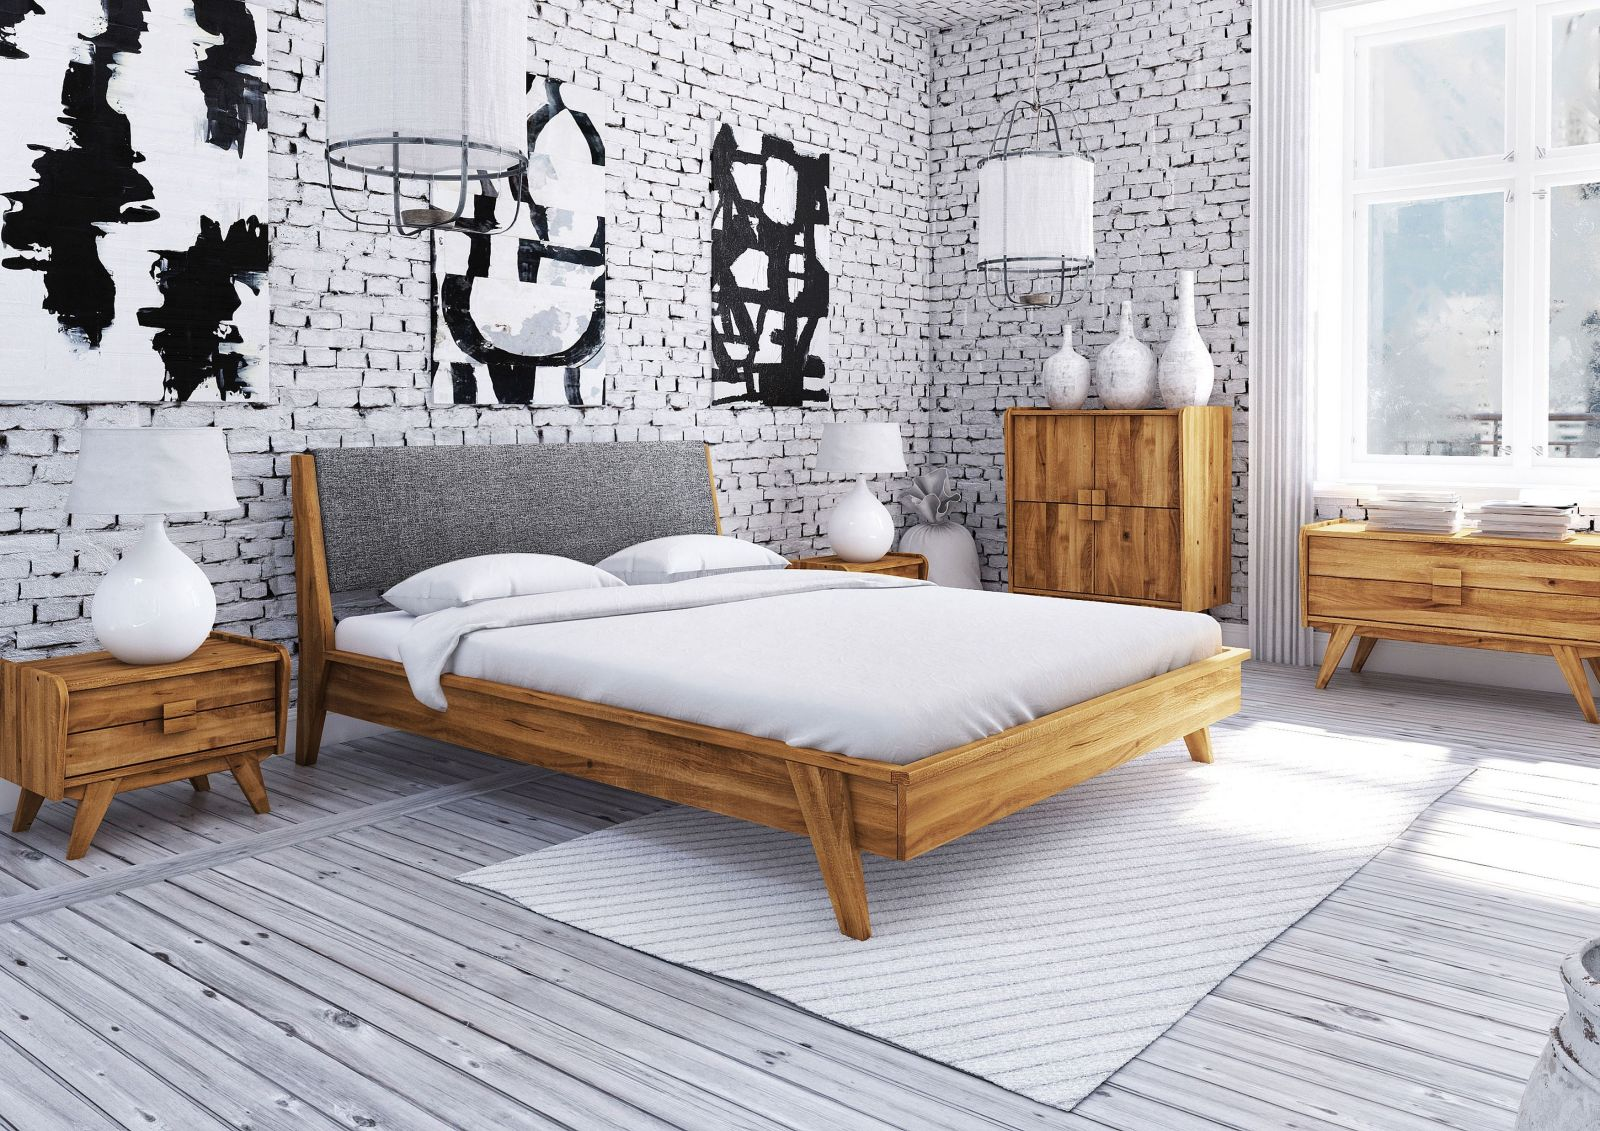 bett wildeiche 160x200 cm grau aus massivholz massivholzm bel. Black Bedroom Furniture Sets. Home Design Ideas